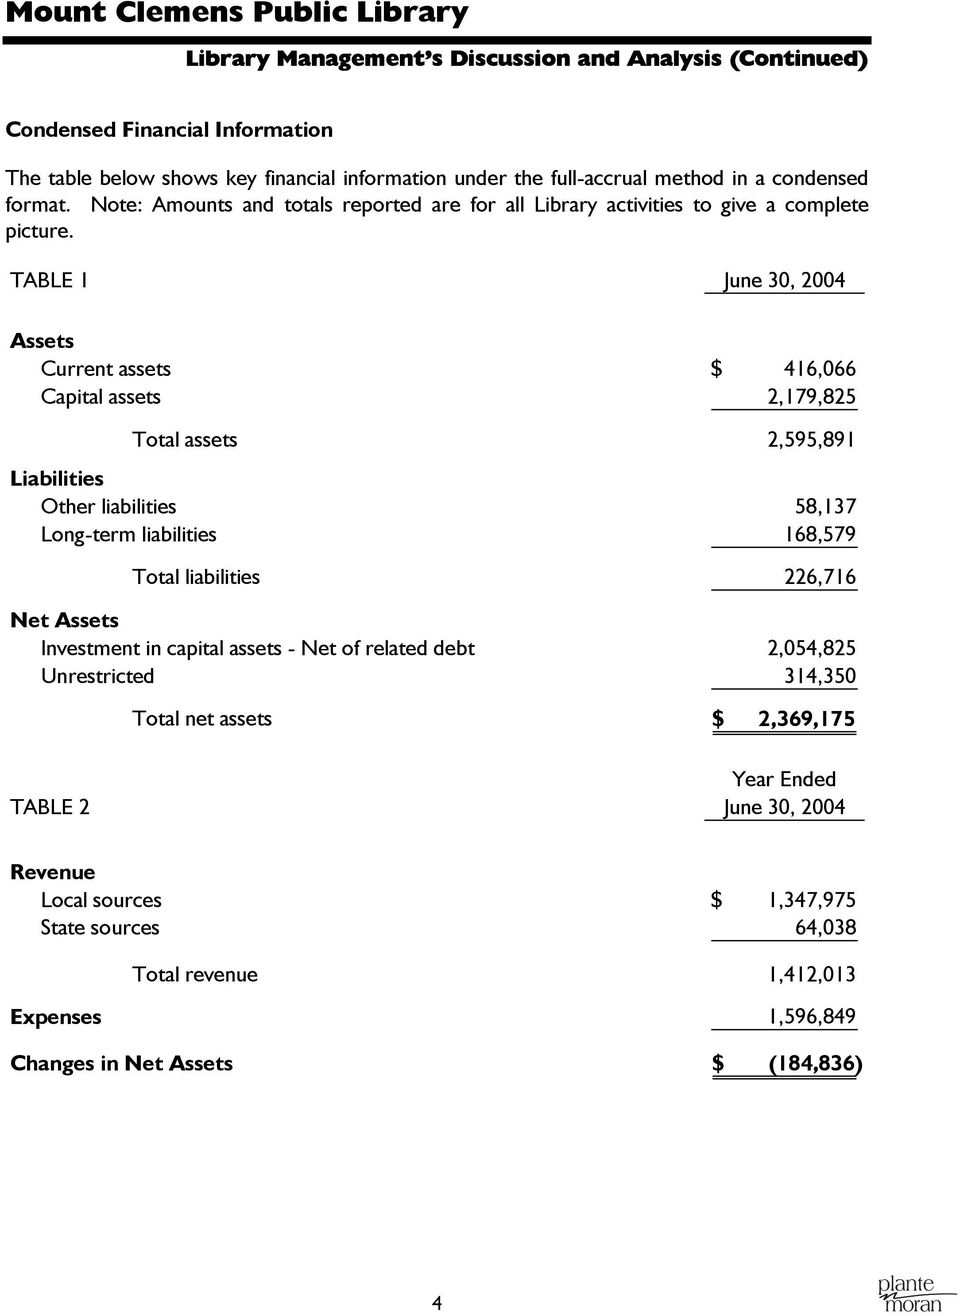 TABLE 1 Assets Current assets $ 416,066 Capital assets 2,179,825 Total assets 2,595,891 Liabilities Other liabilities 58,137 Long-term liabilities 168,579 Total liabilities 226,716 Net